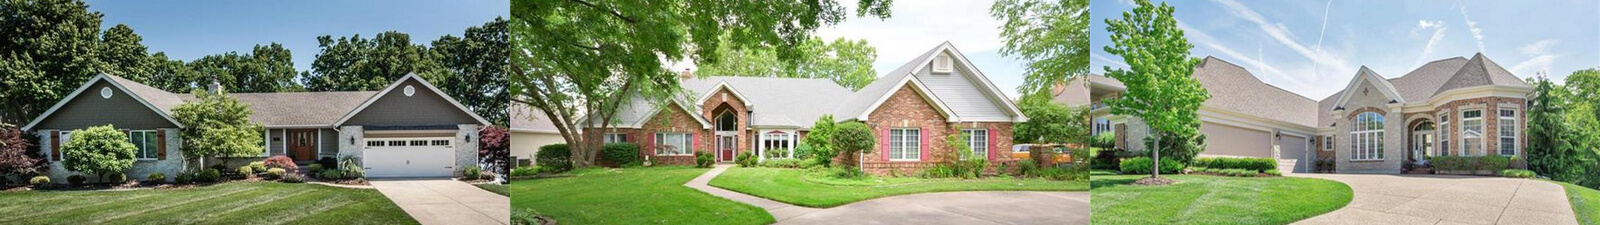 Magnificent Lake St Louis Real Estate Homes For Sale In Lake St Download Free Architecture Designs Crovemadebymaigaardcom